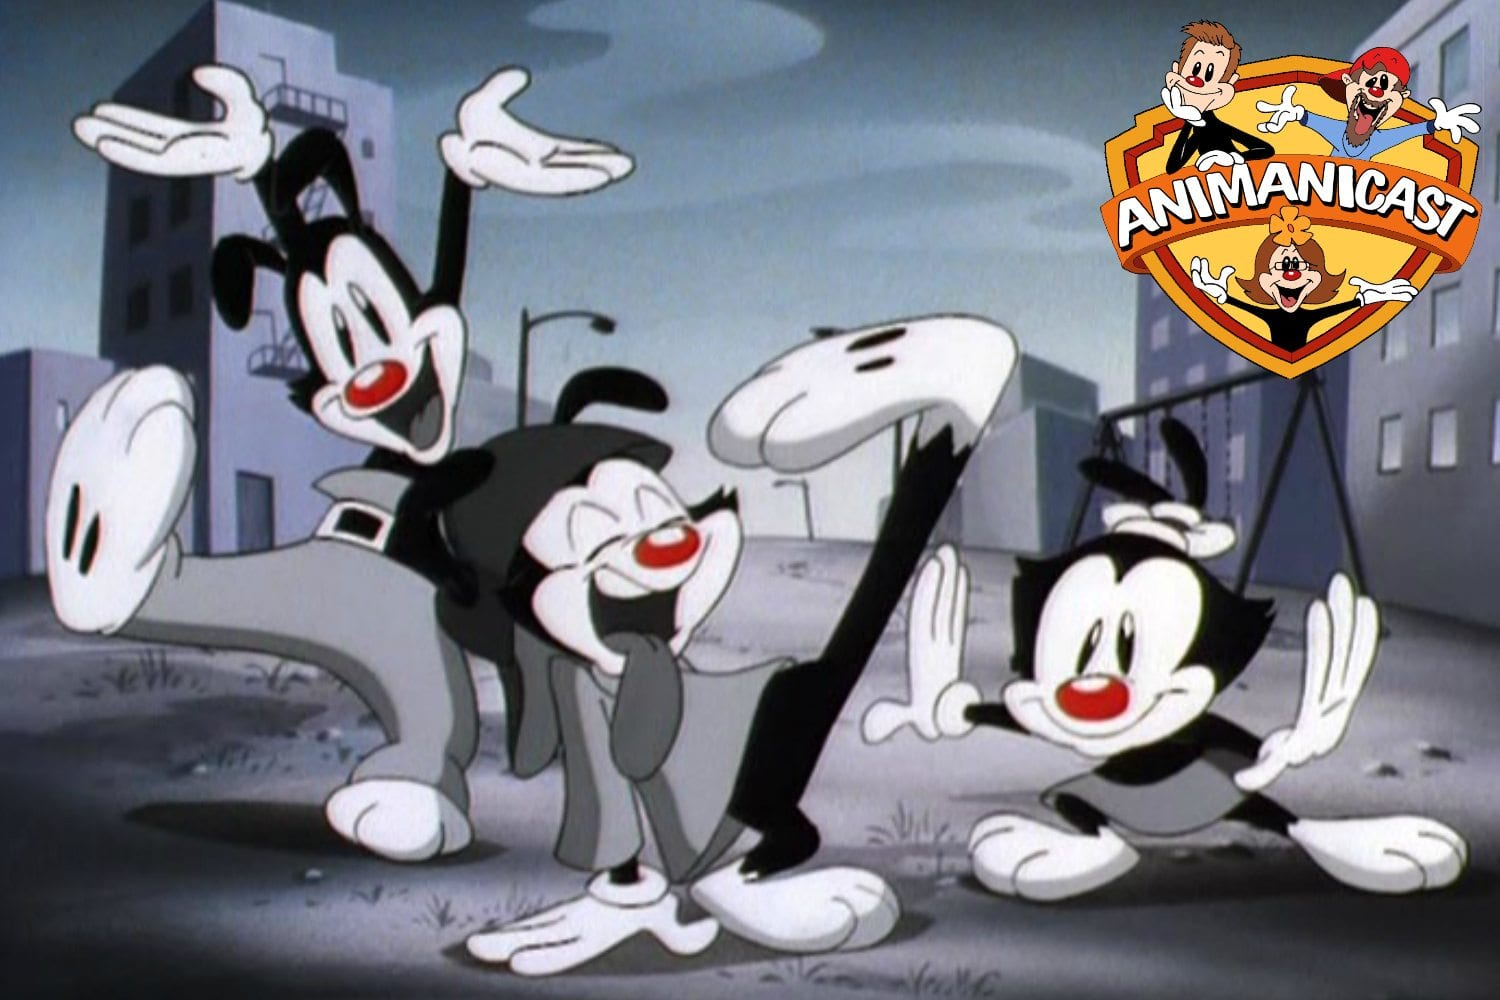 Animanicast #73: Animaniacs Creator Tom Ruegger Stops By and a Discussion of Animaniacs Episode 73